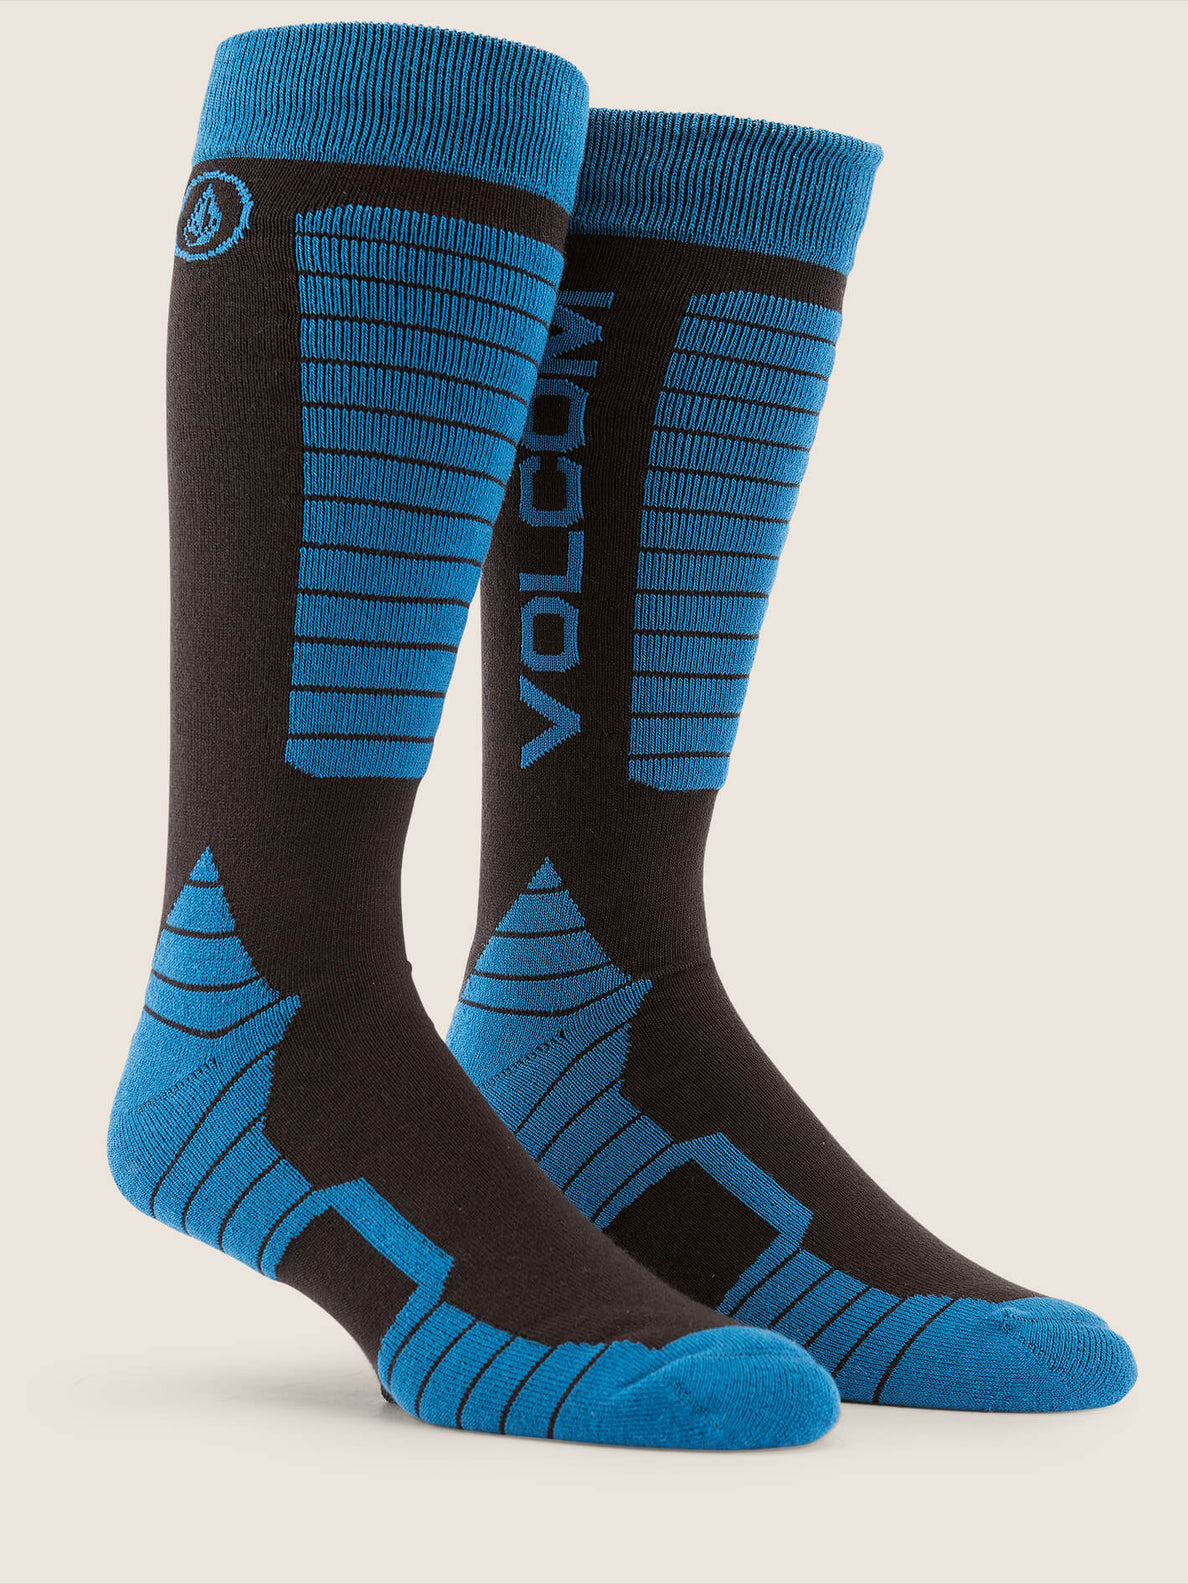 Kootney Sock In Blue, Front View